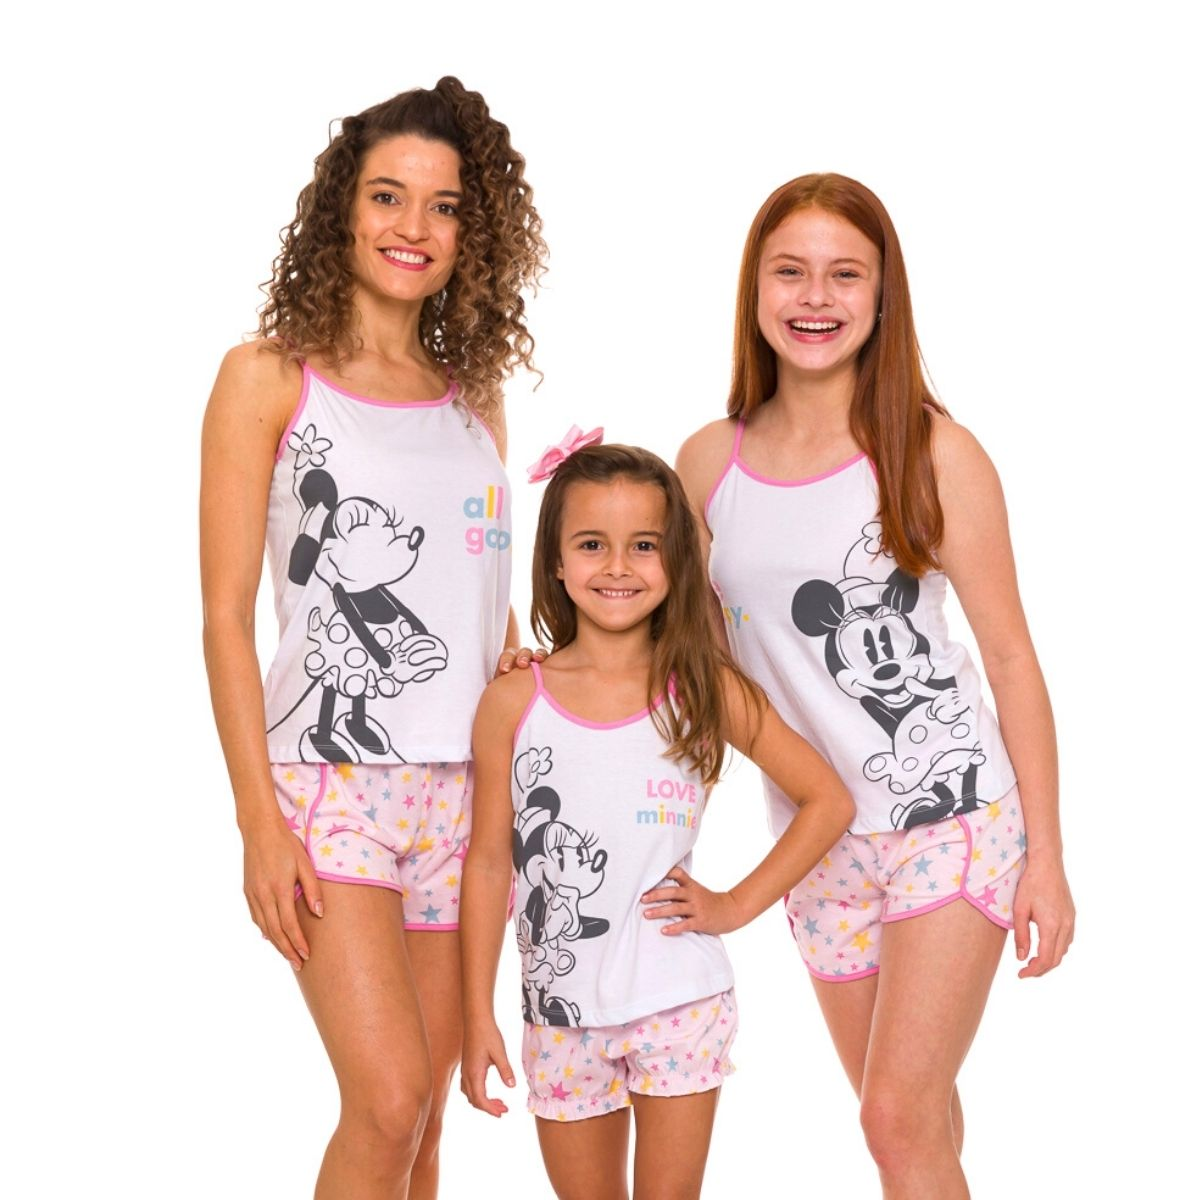 Pijama bady doll mamãe love minnie fresquinho turma do mickey